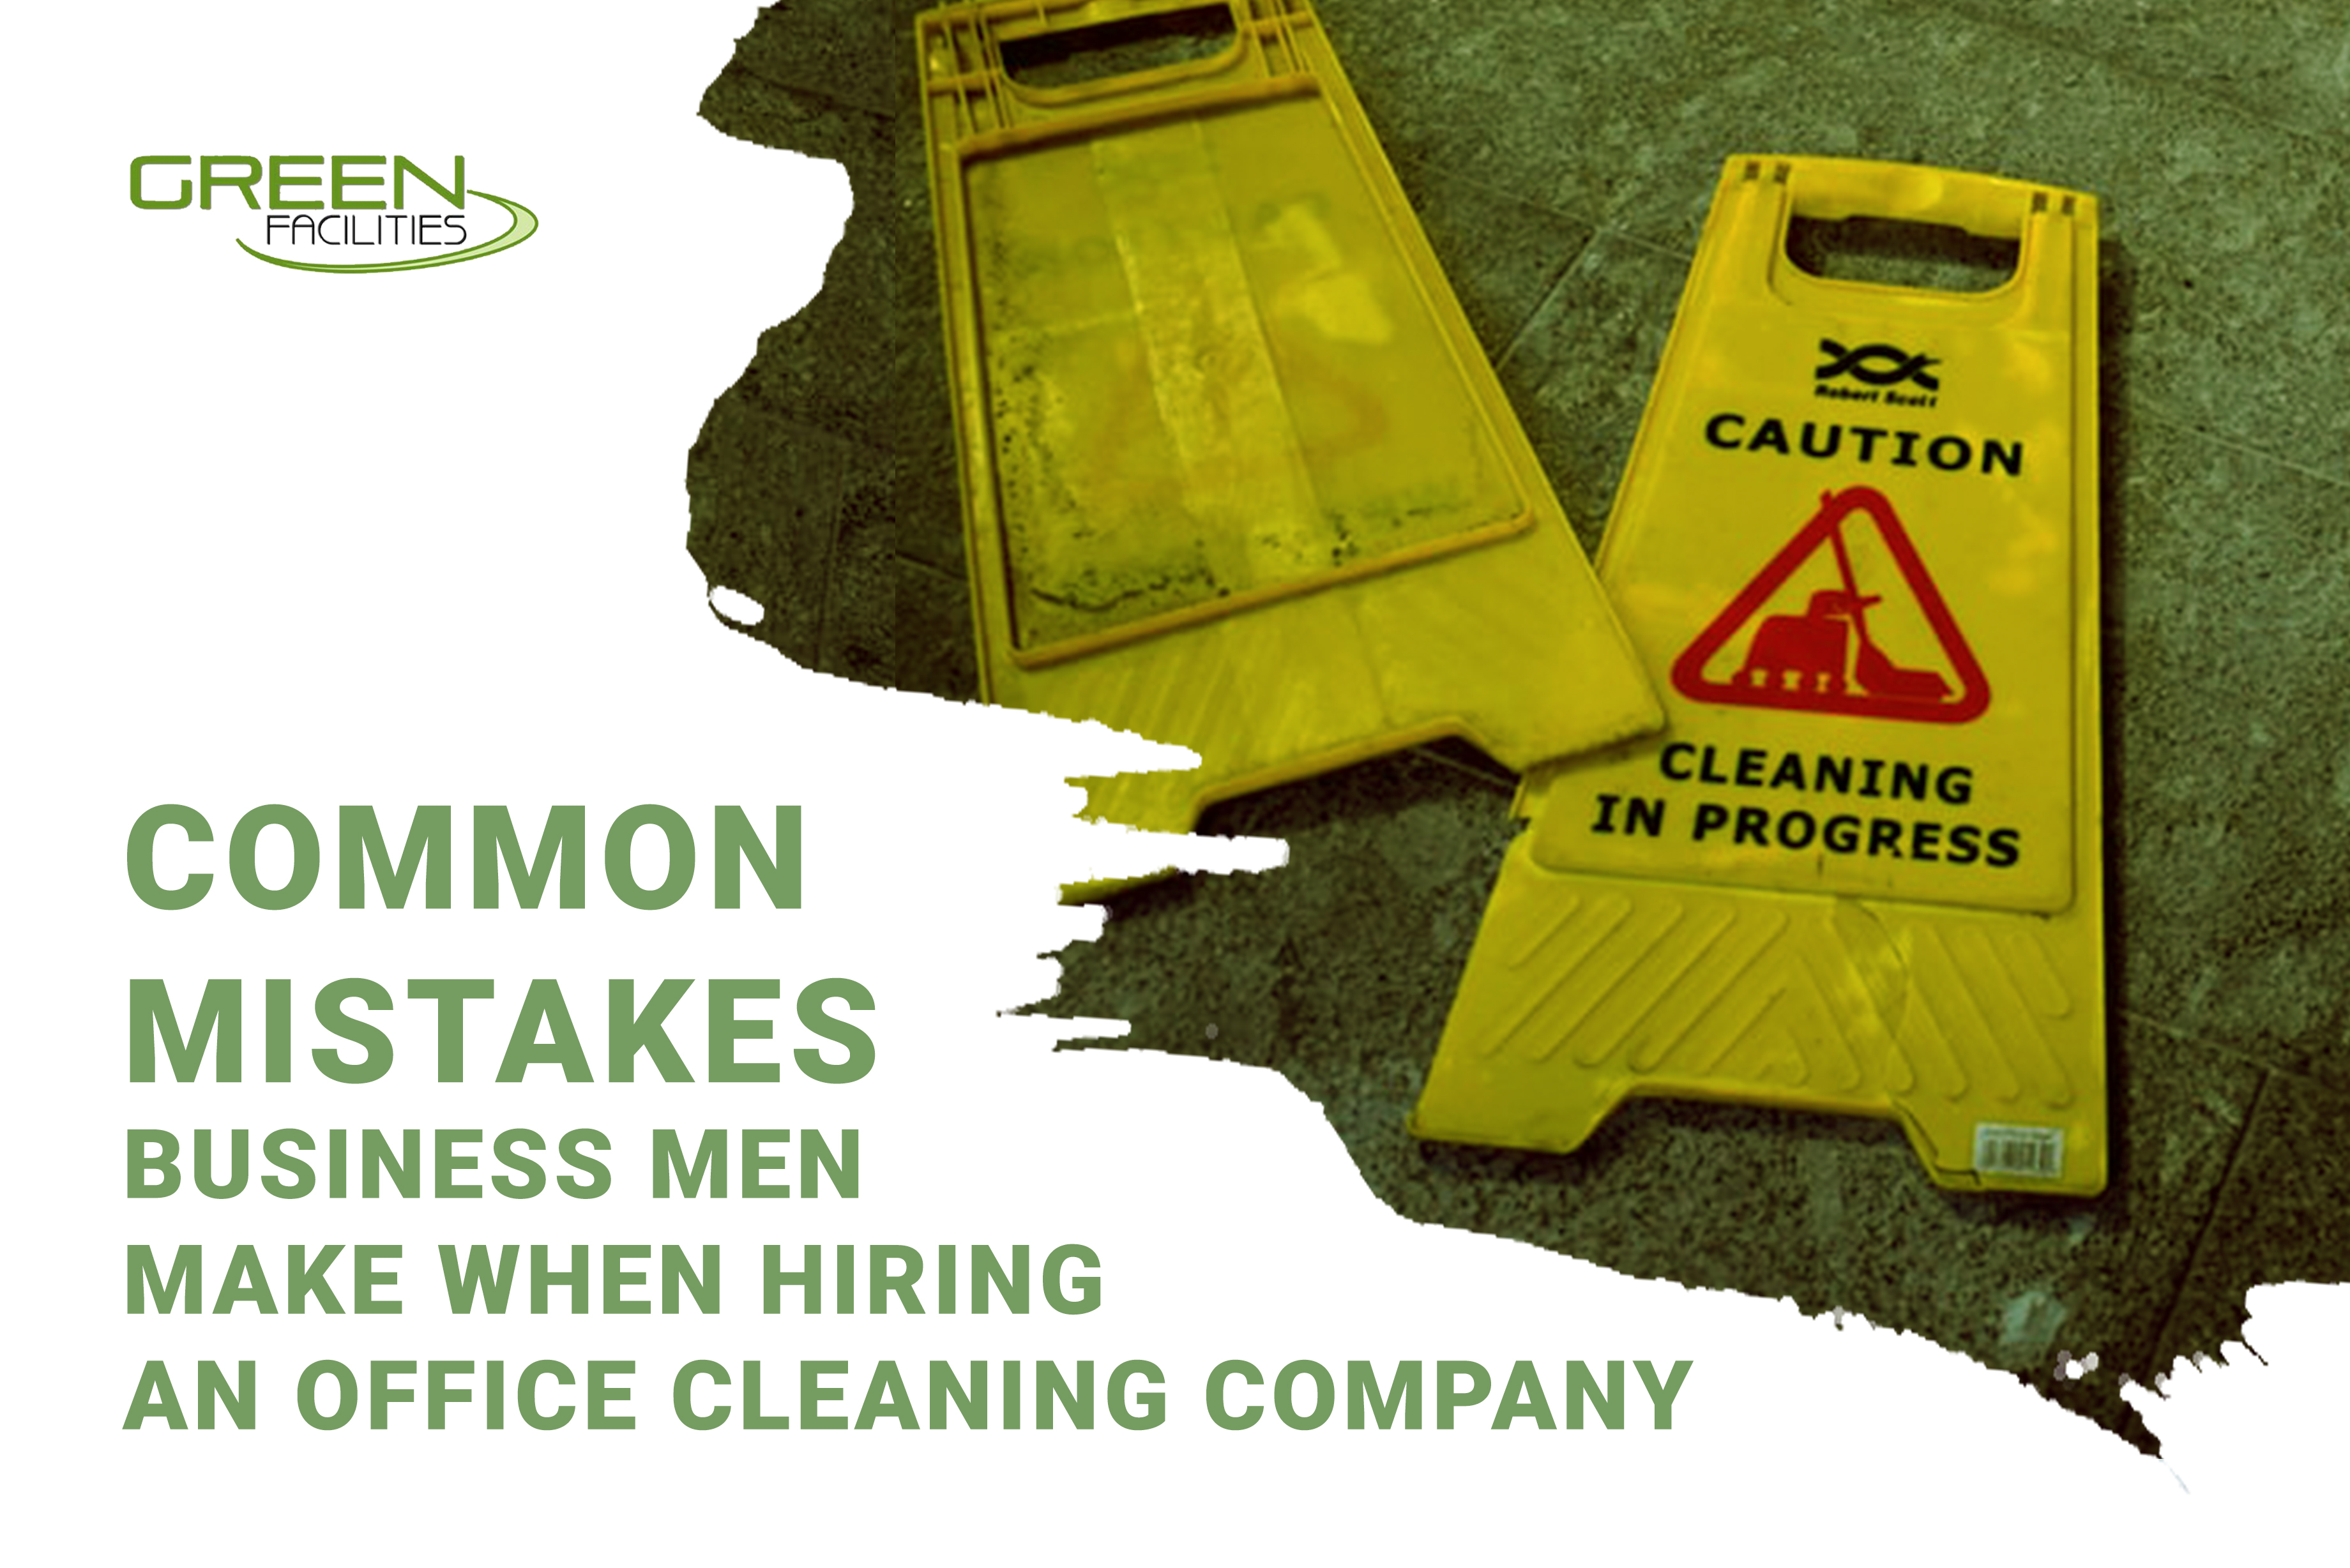 Common Mistakes Businesses Make When Hiring an Office Cleaning Company